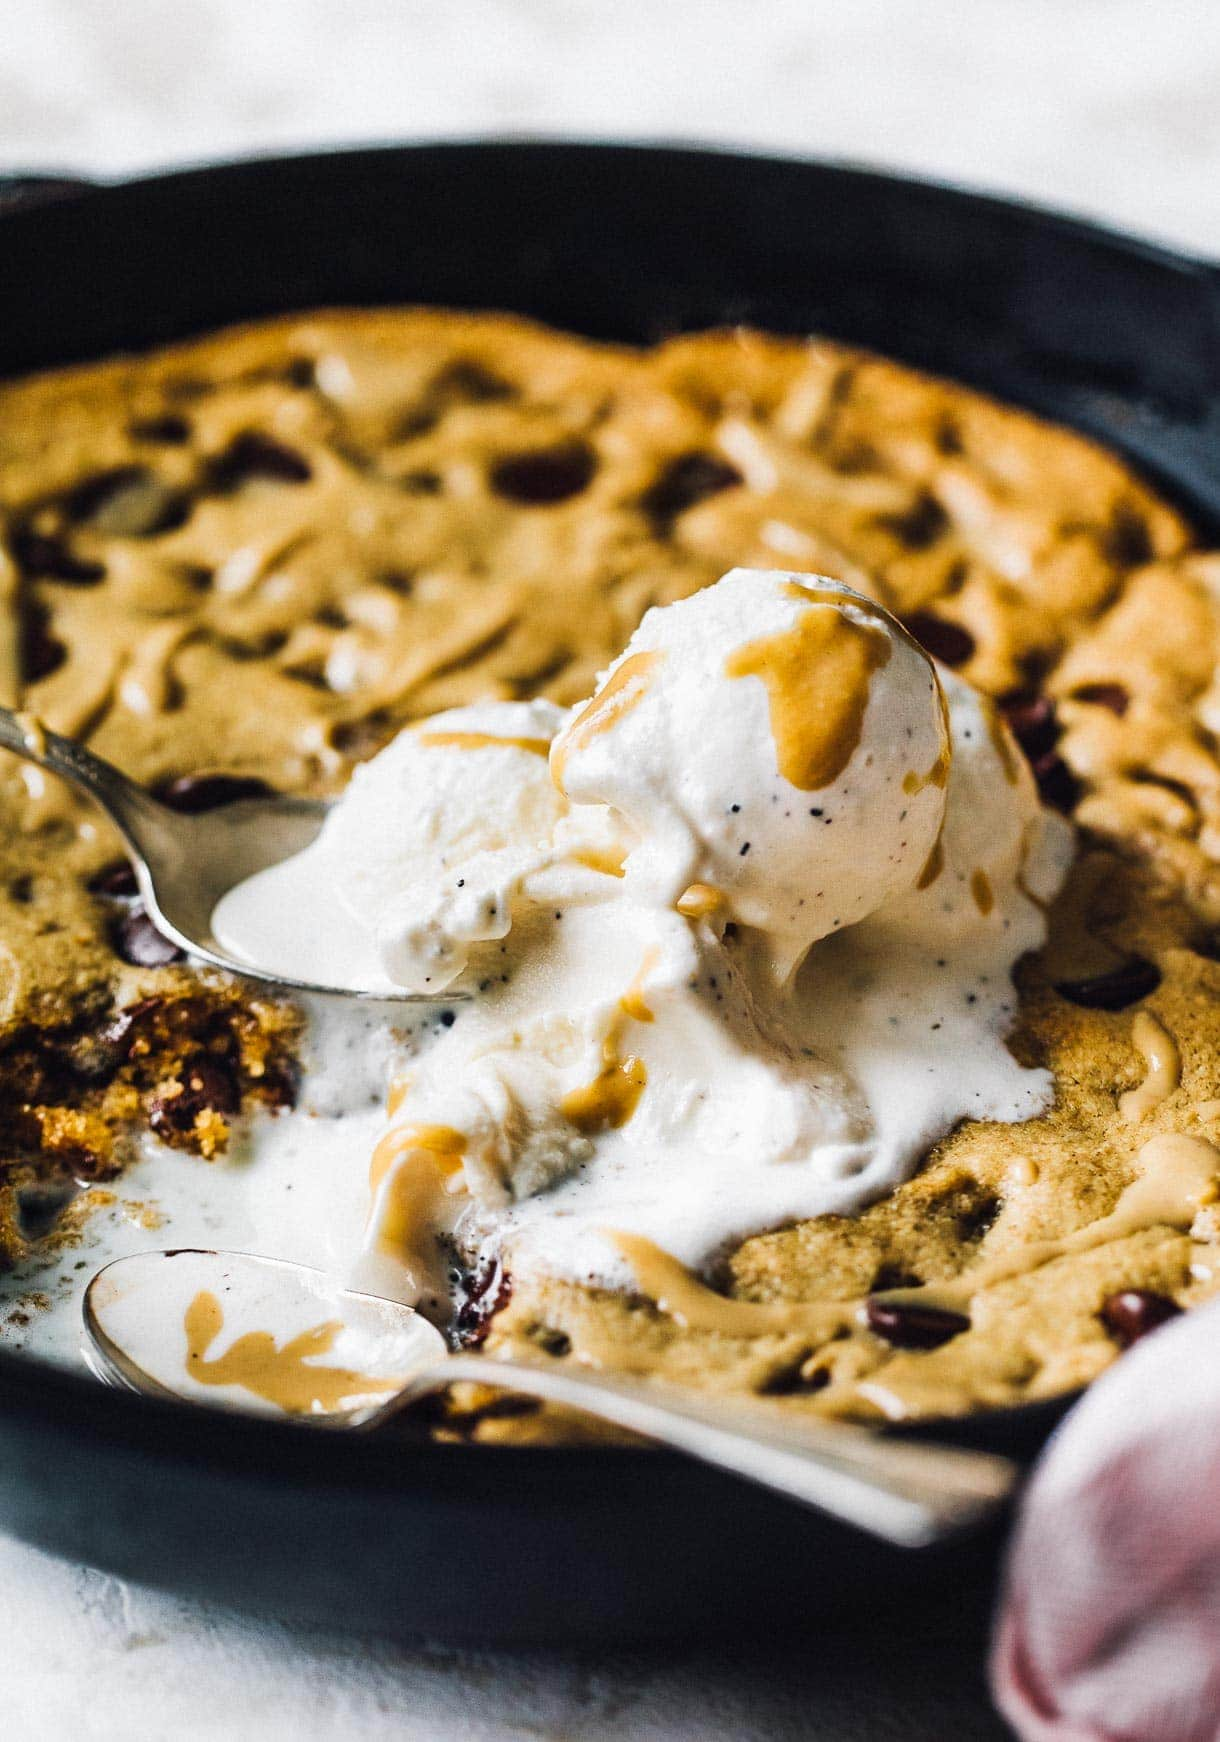 close up of chocolate chip cookie in a skillet with vanilla ice cream scoops